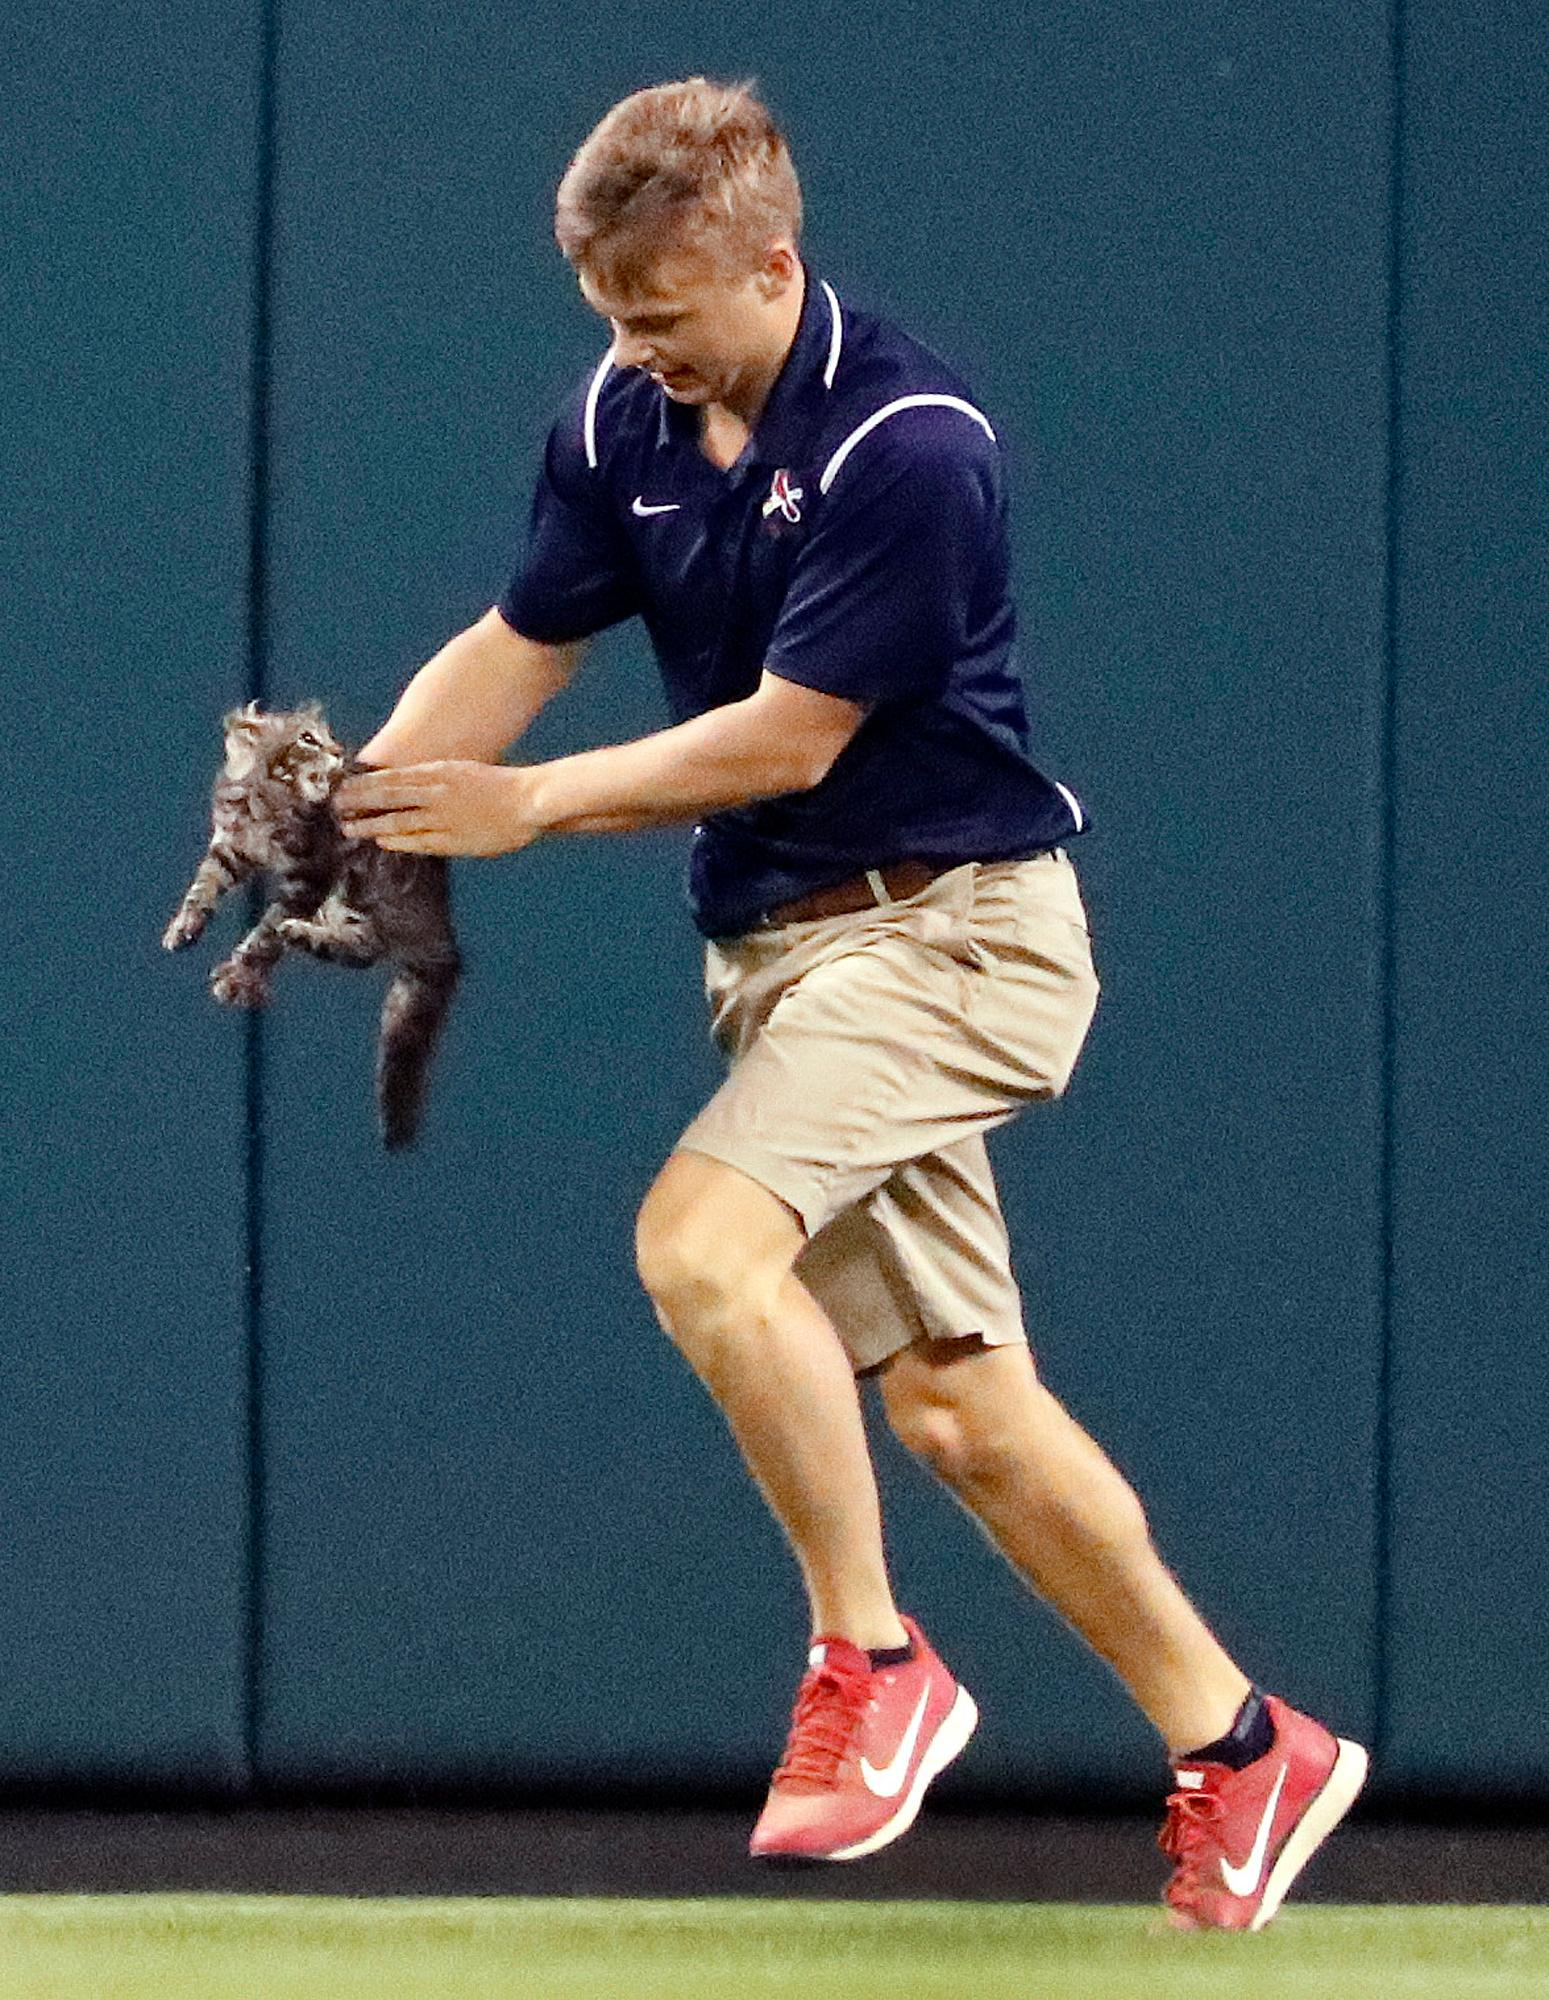 A member of the Busch Stadium grounds crew removes a cat that had run onto the field during the sixth inning of a baseball game between the St. Louis Cardinals and the Kansas City Royals on Wednesday, Aug. 9, 2017, in St. Louis. (AP Photo/Jeff Roberson)